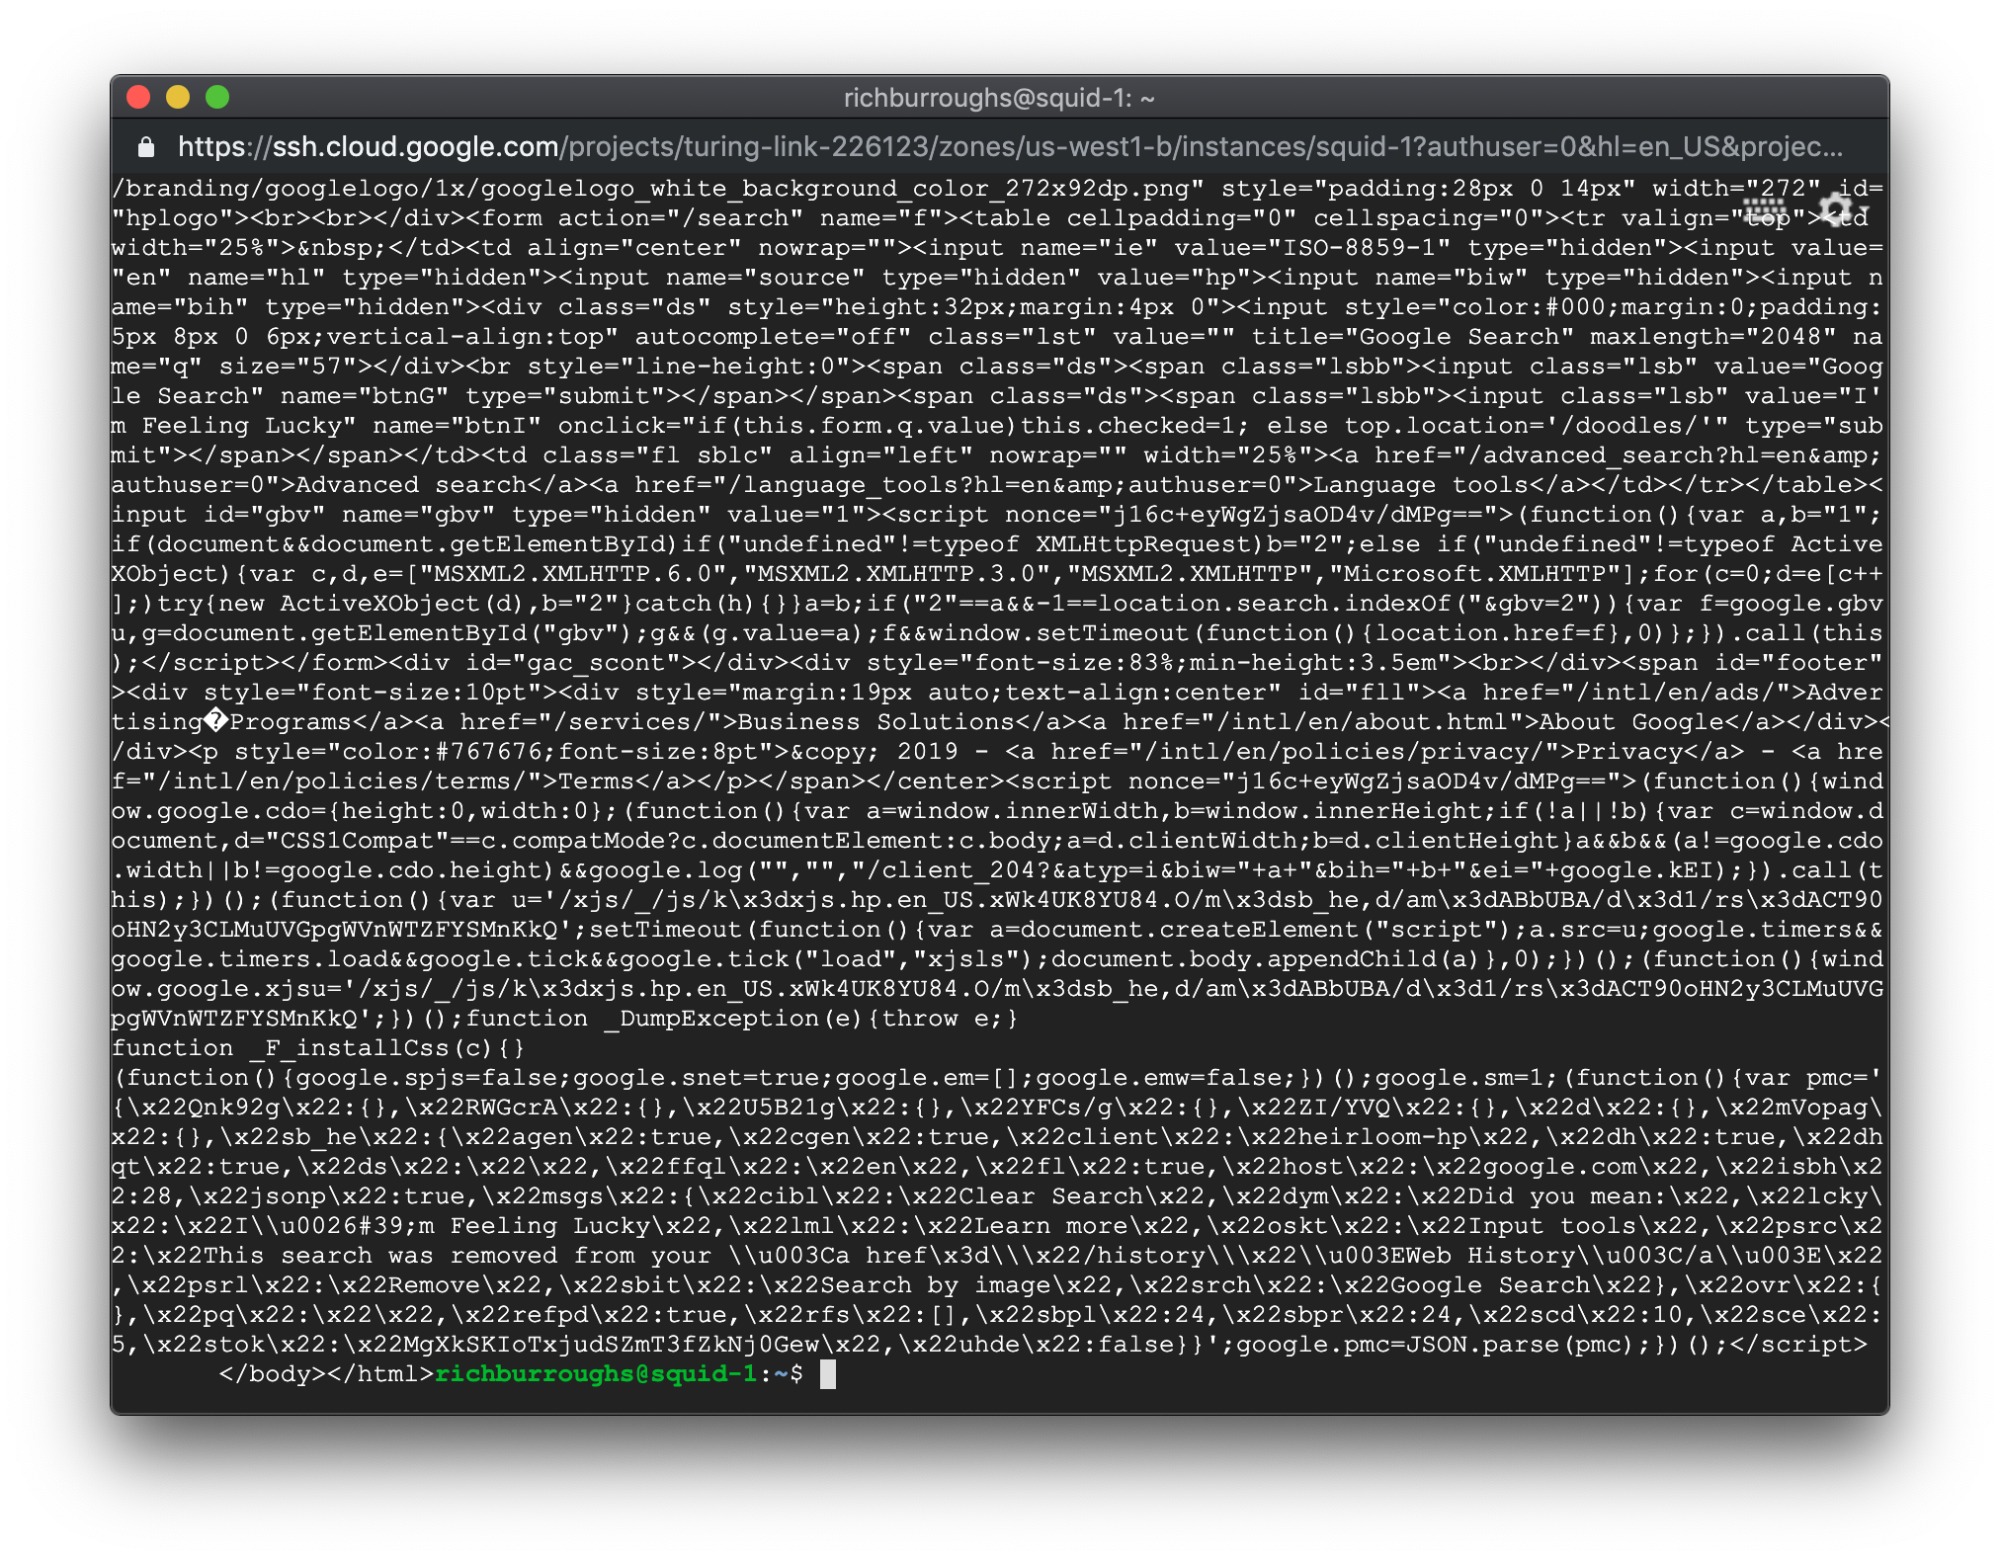 Curl command output